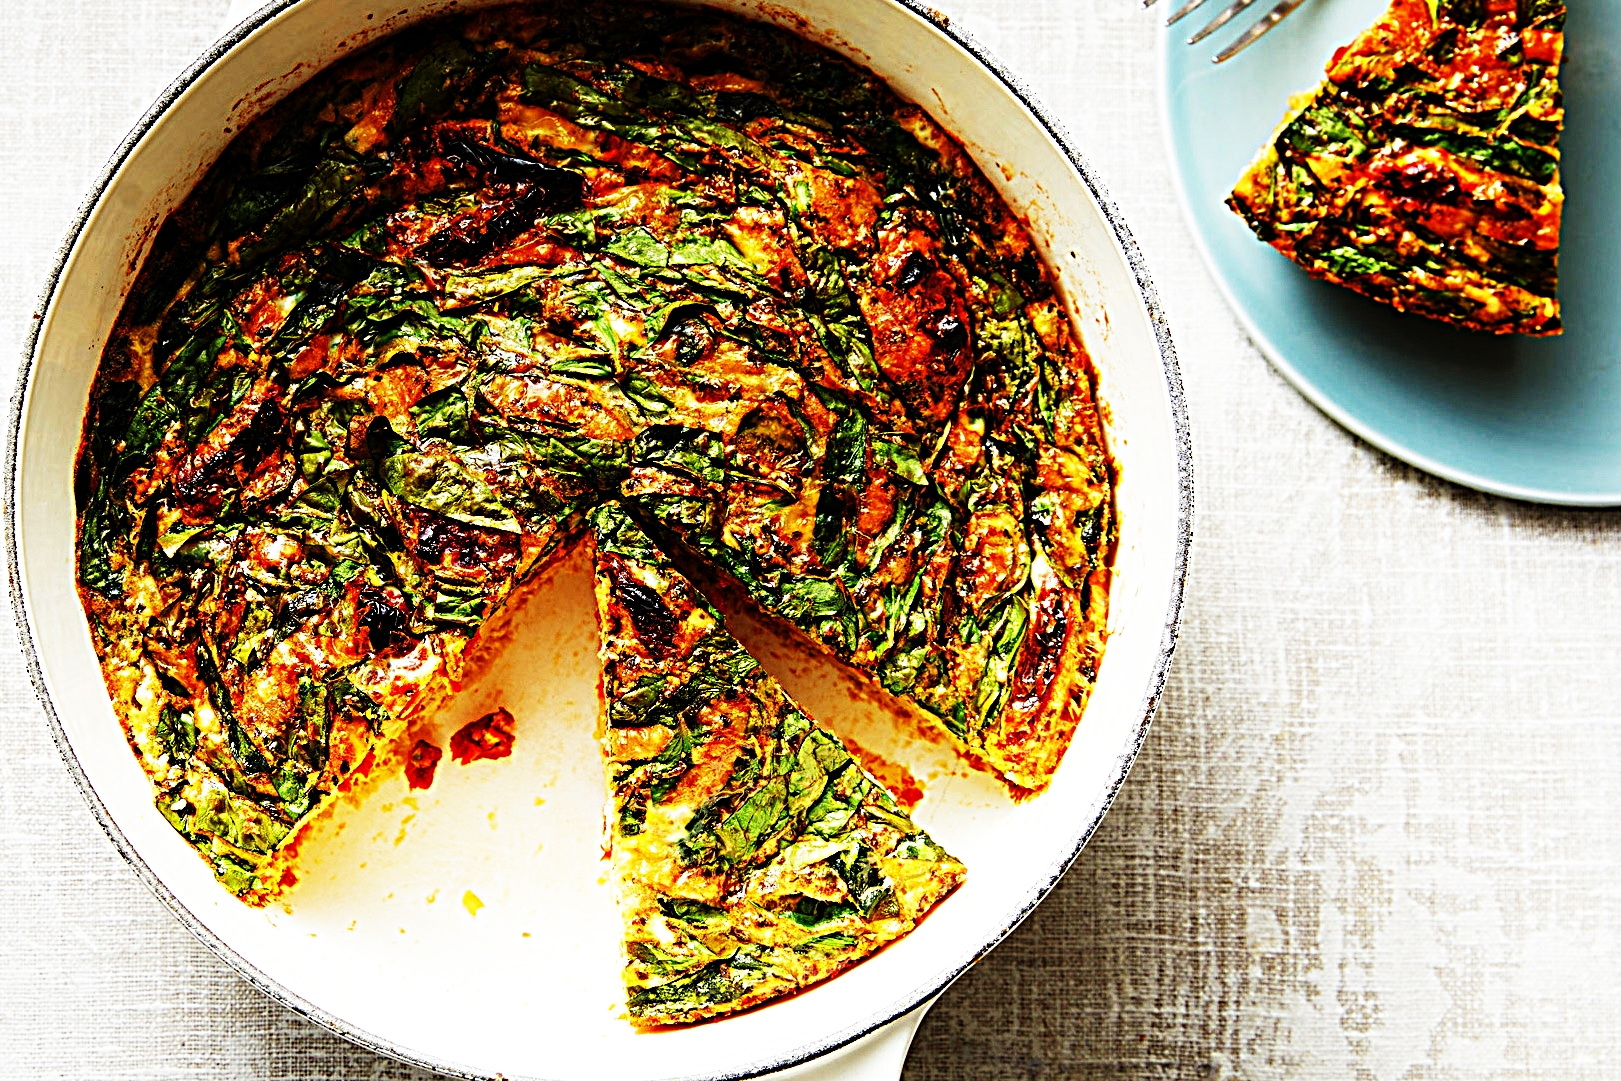 Stupid-Easy Recipe for 5 Ingredient Sun-Dried Tomato and Spinach Frittata (#1 Top-Rated)